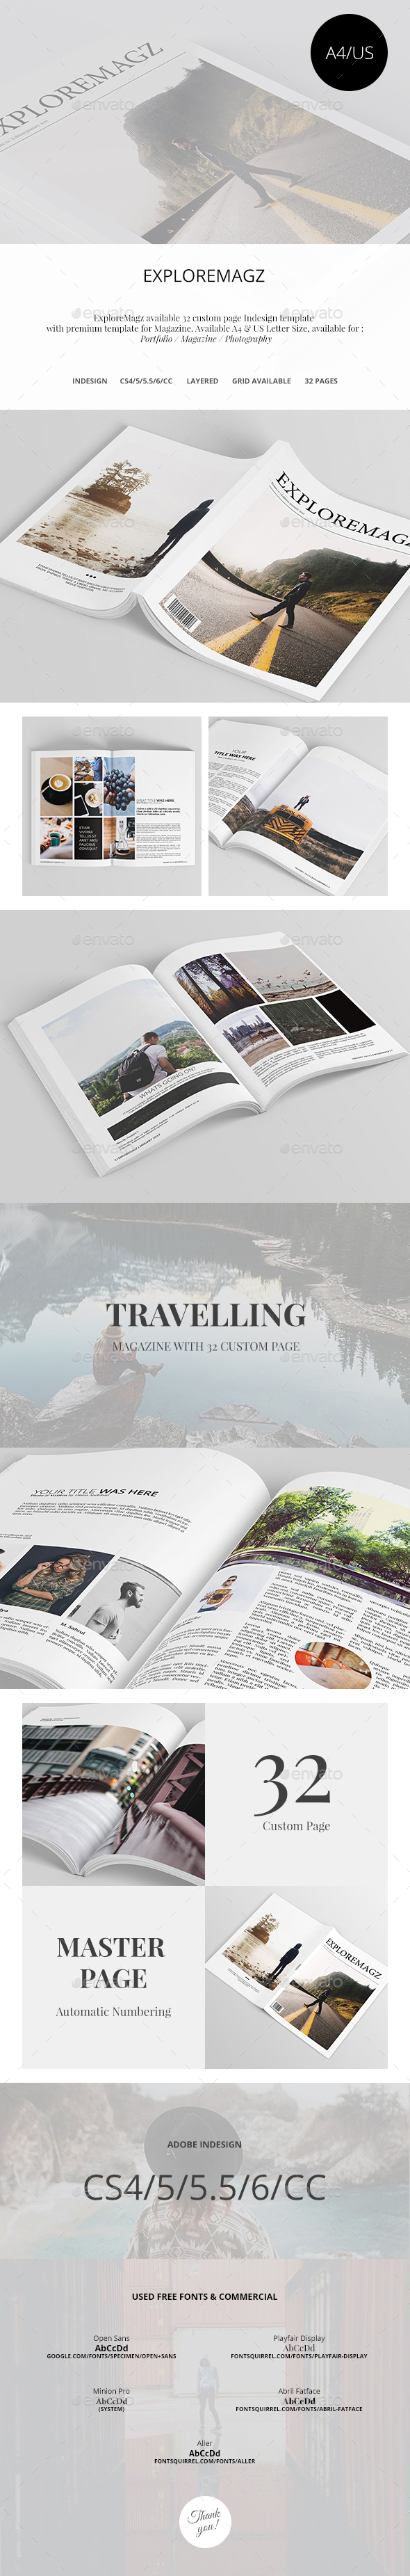 Exploremagz Magazine Template InDesign INDD #design Download ...